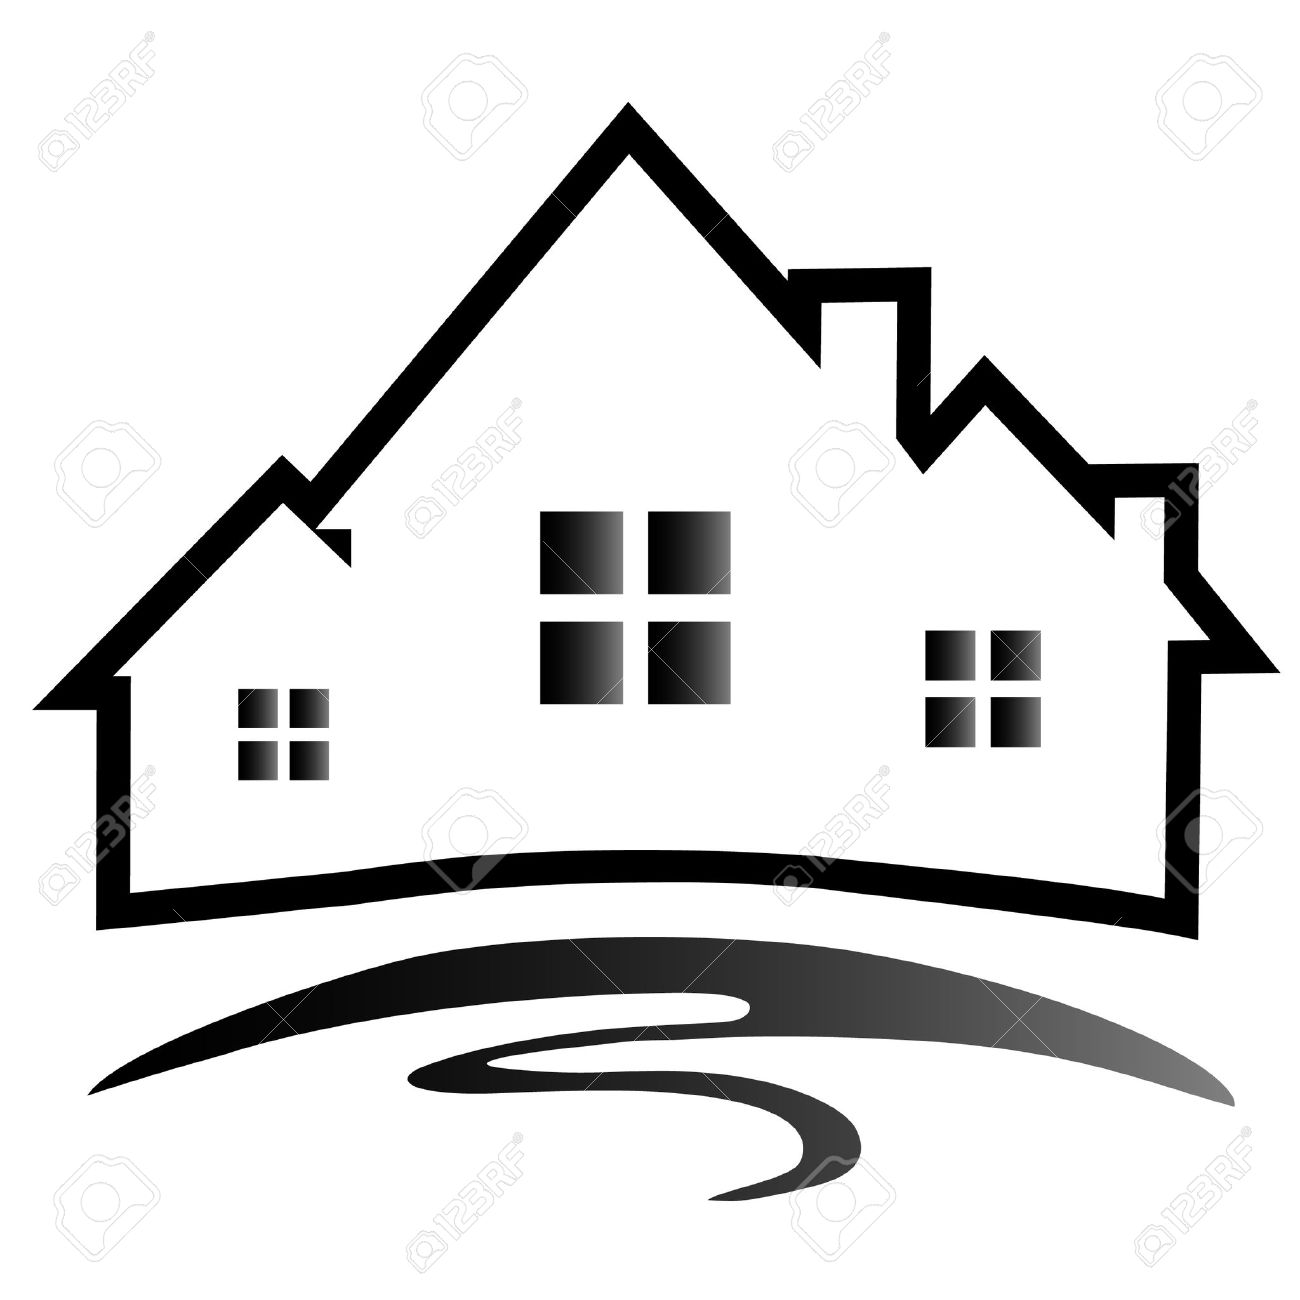 houses silhouette logo royalty free cliparts vectors and stock rh 123rf com haunted house silhouette vector house silhouette vector png